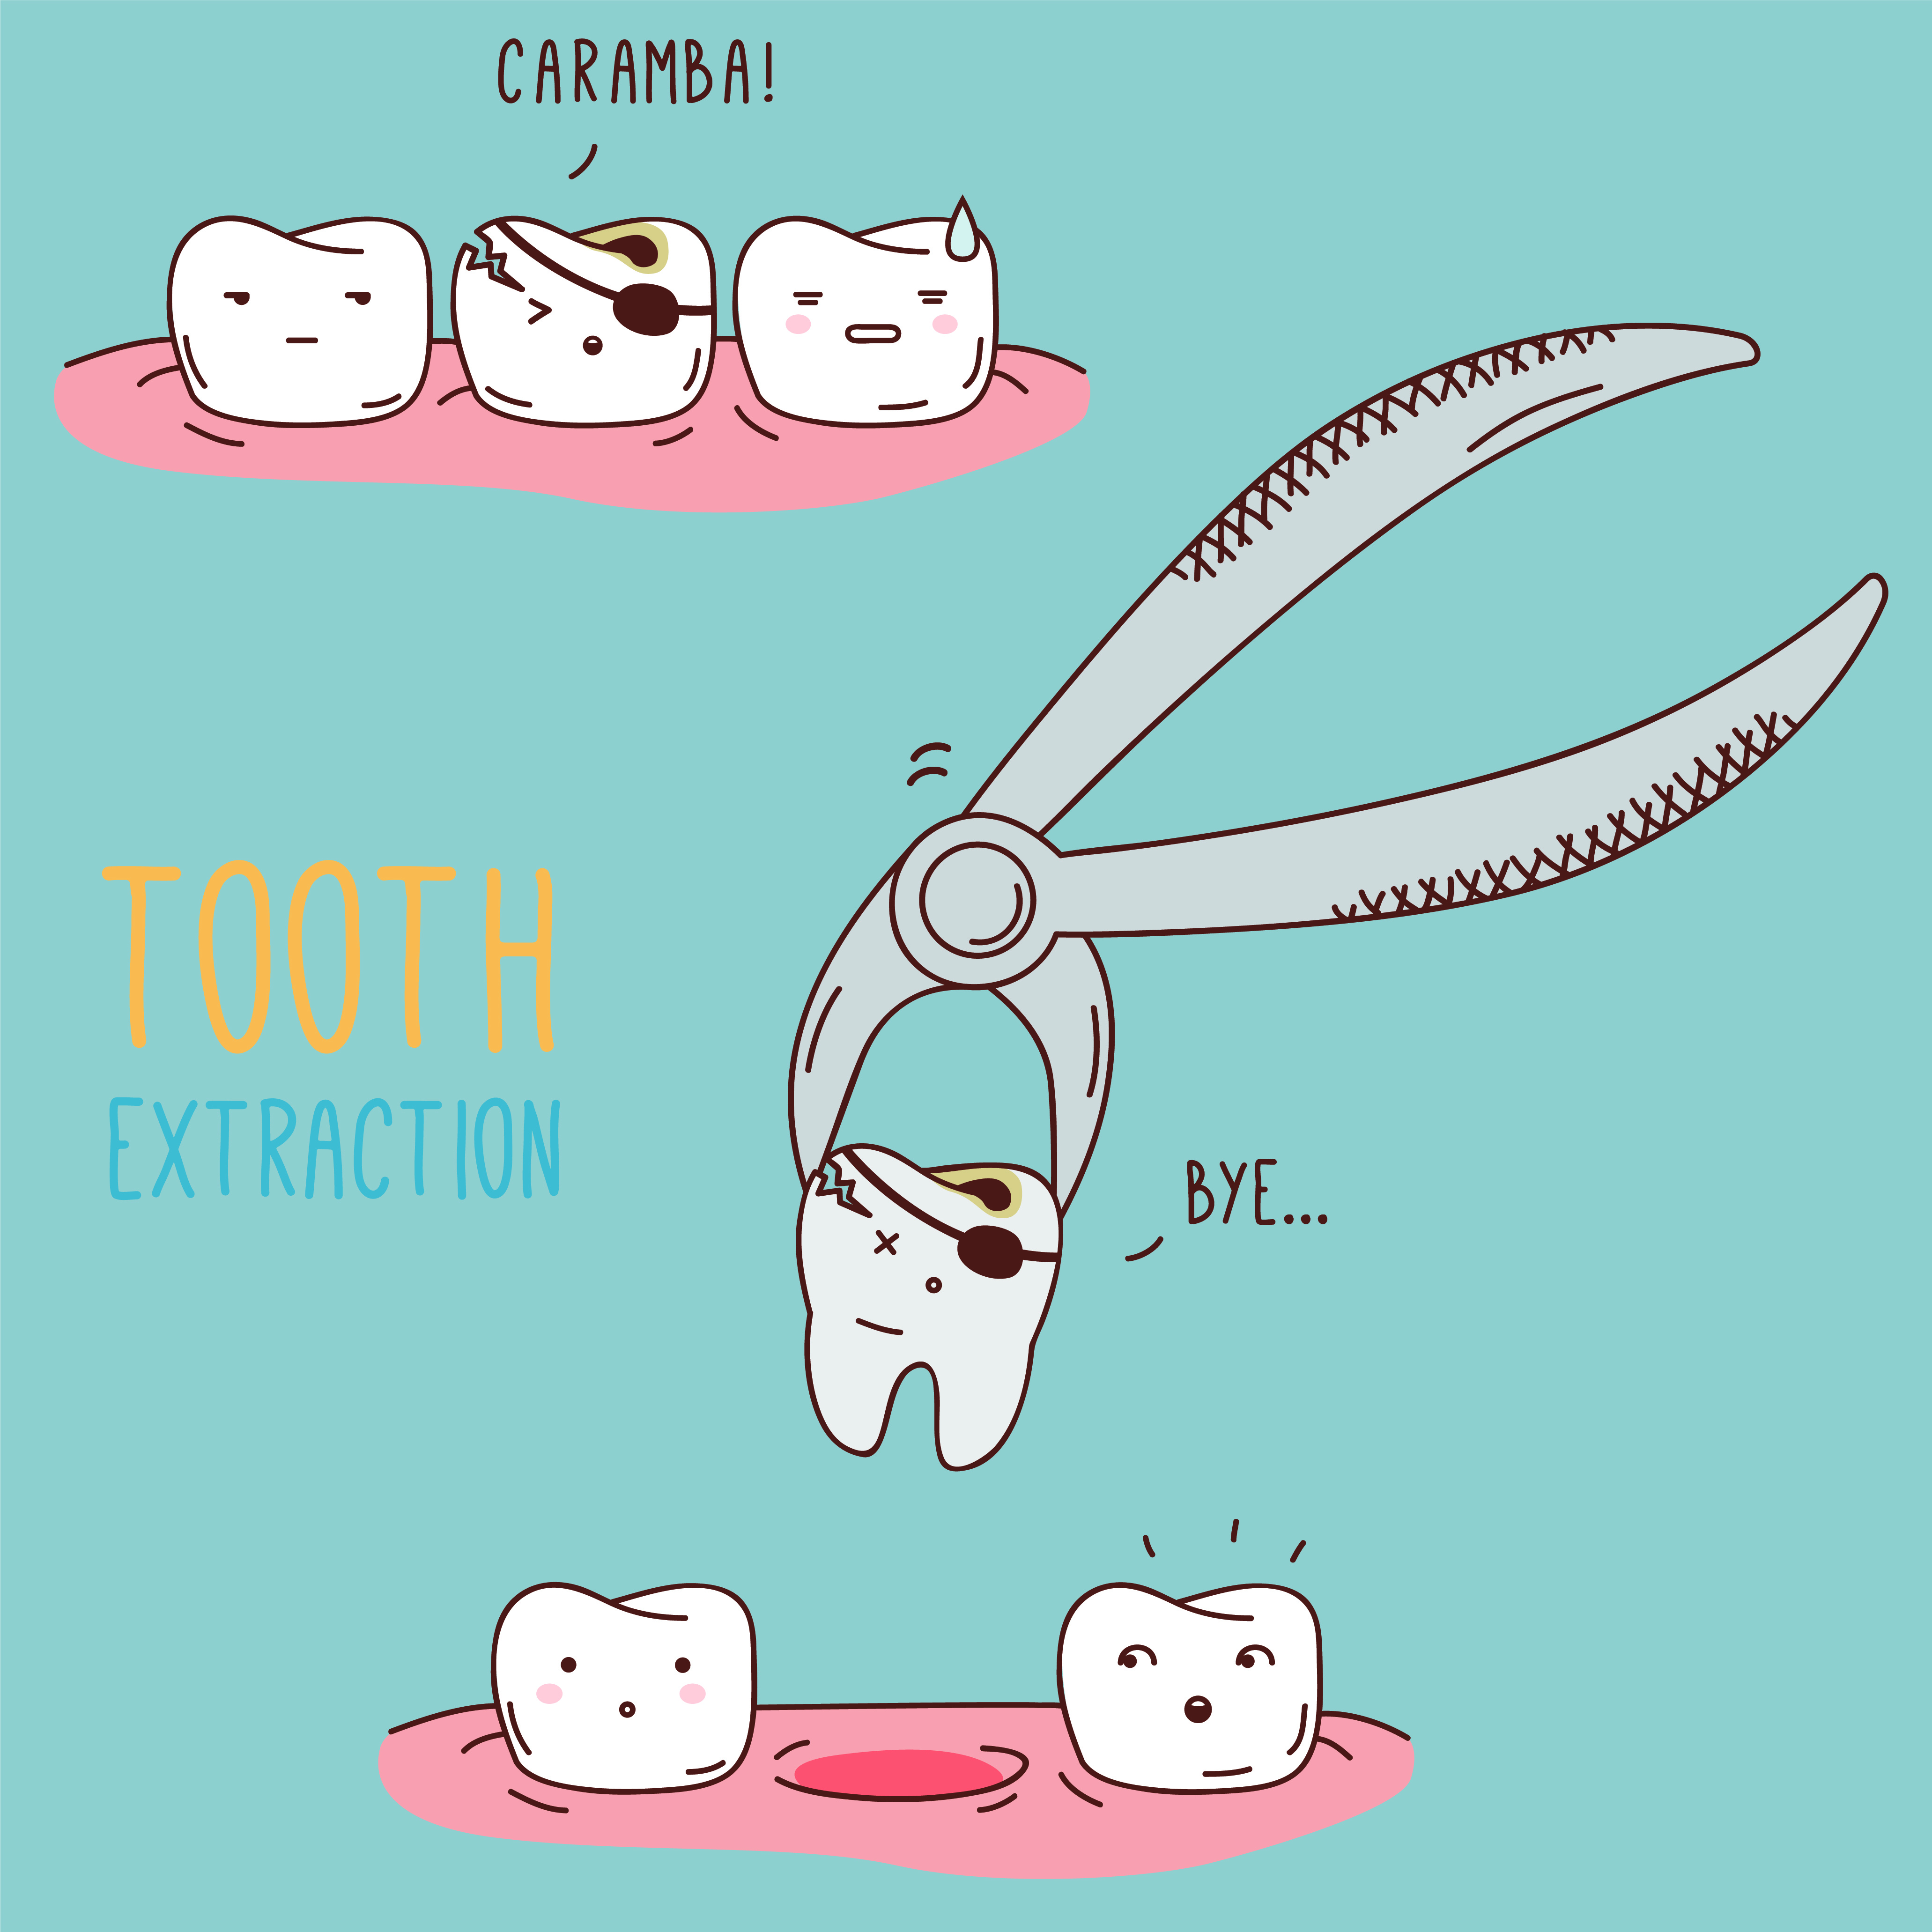 Comical drawing of a tooth being extracted - Alder Dental, Vancouver WA